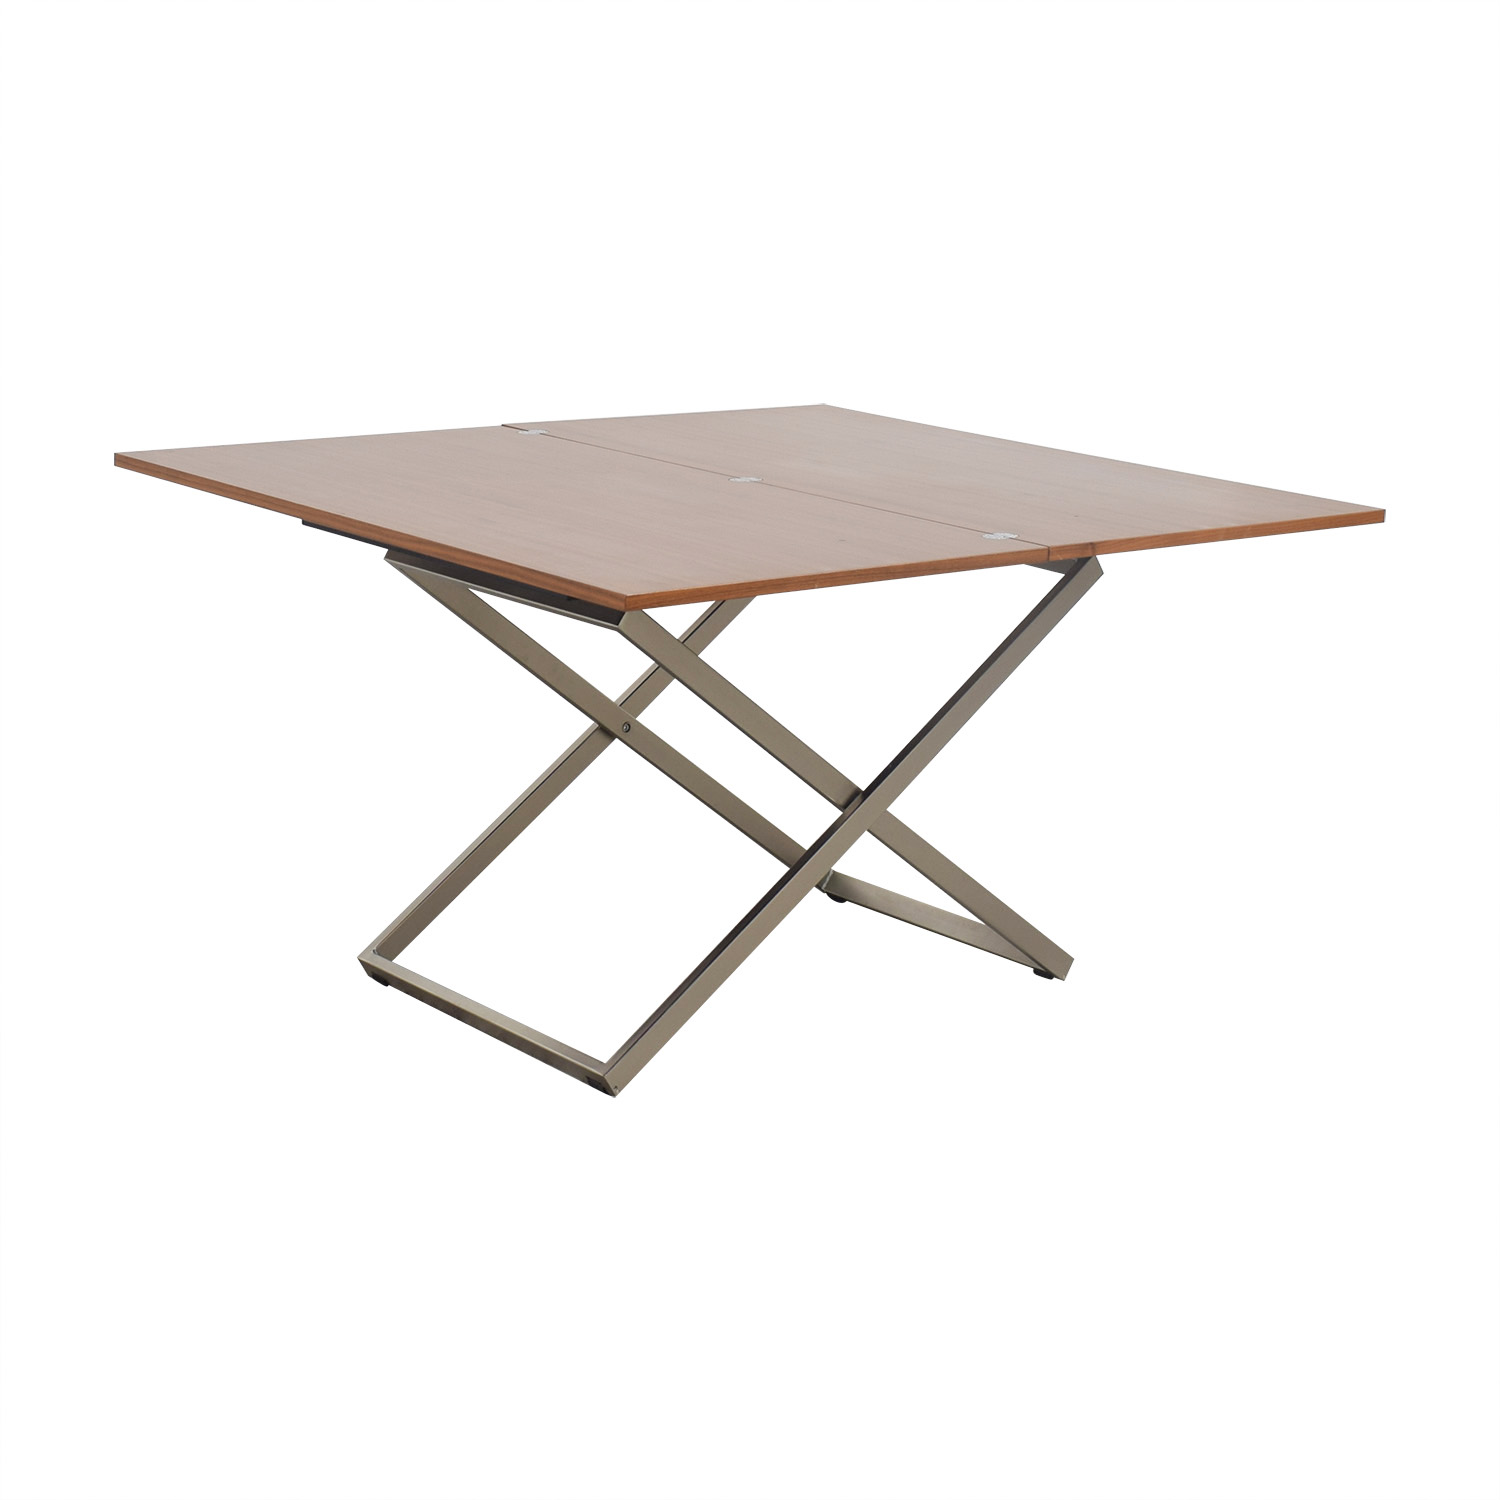 buy Bo Concept Bo Concept Rubi Adjustable Table from Coffee to Dining online